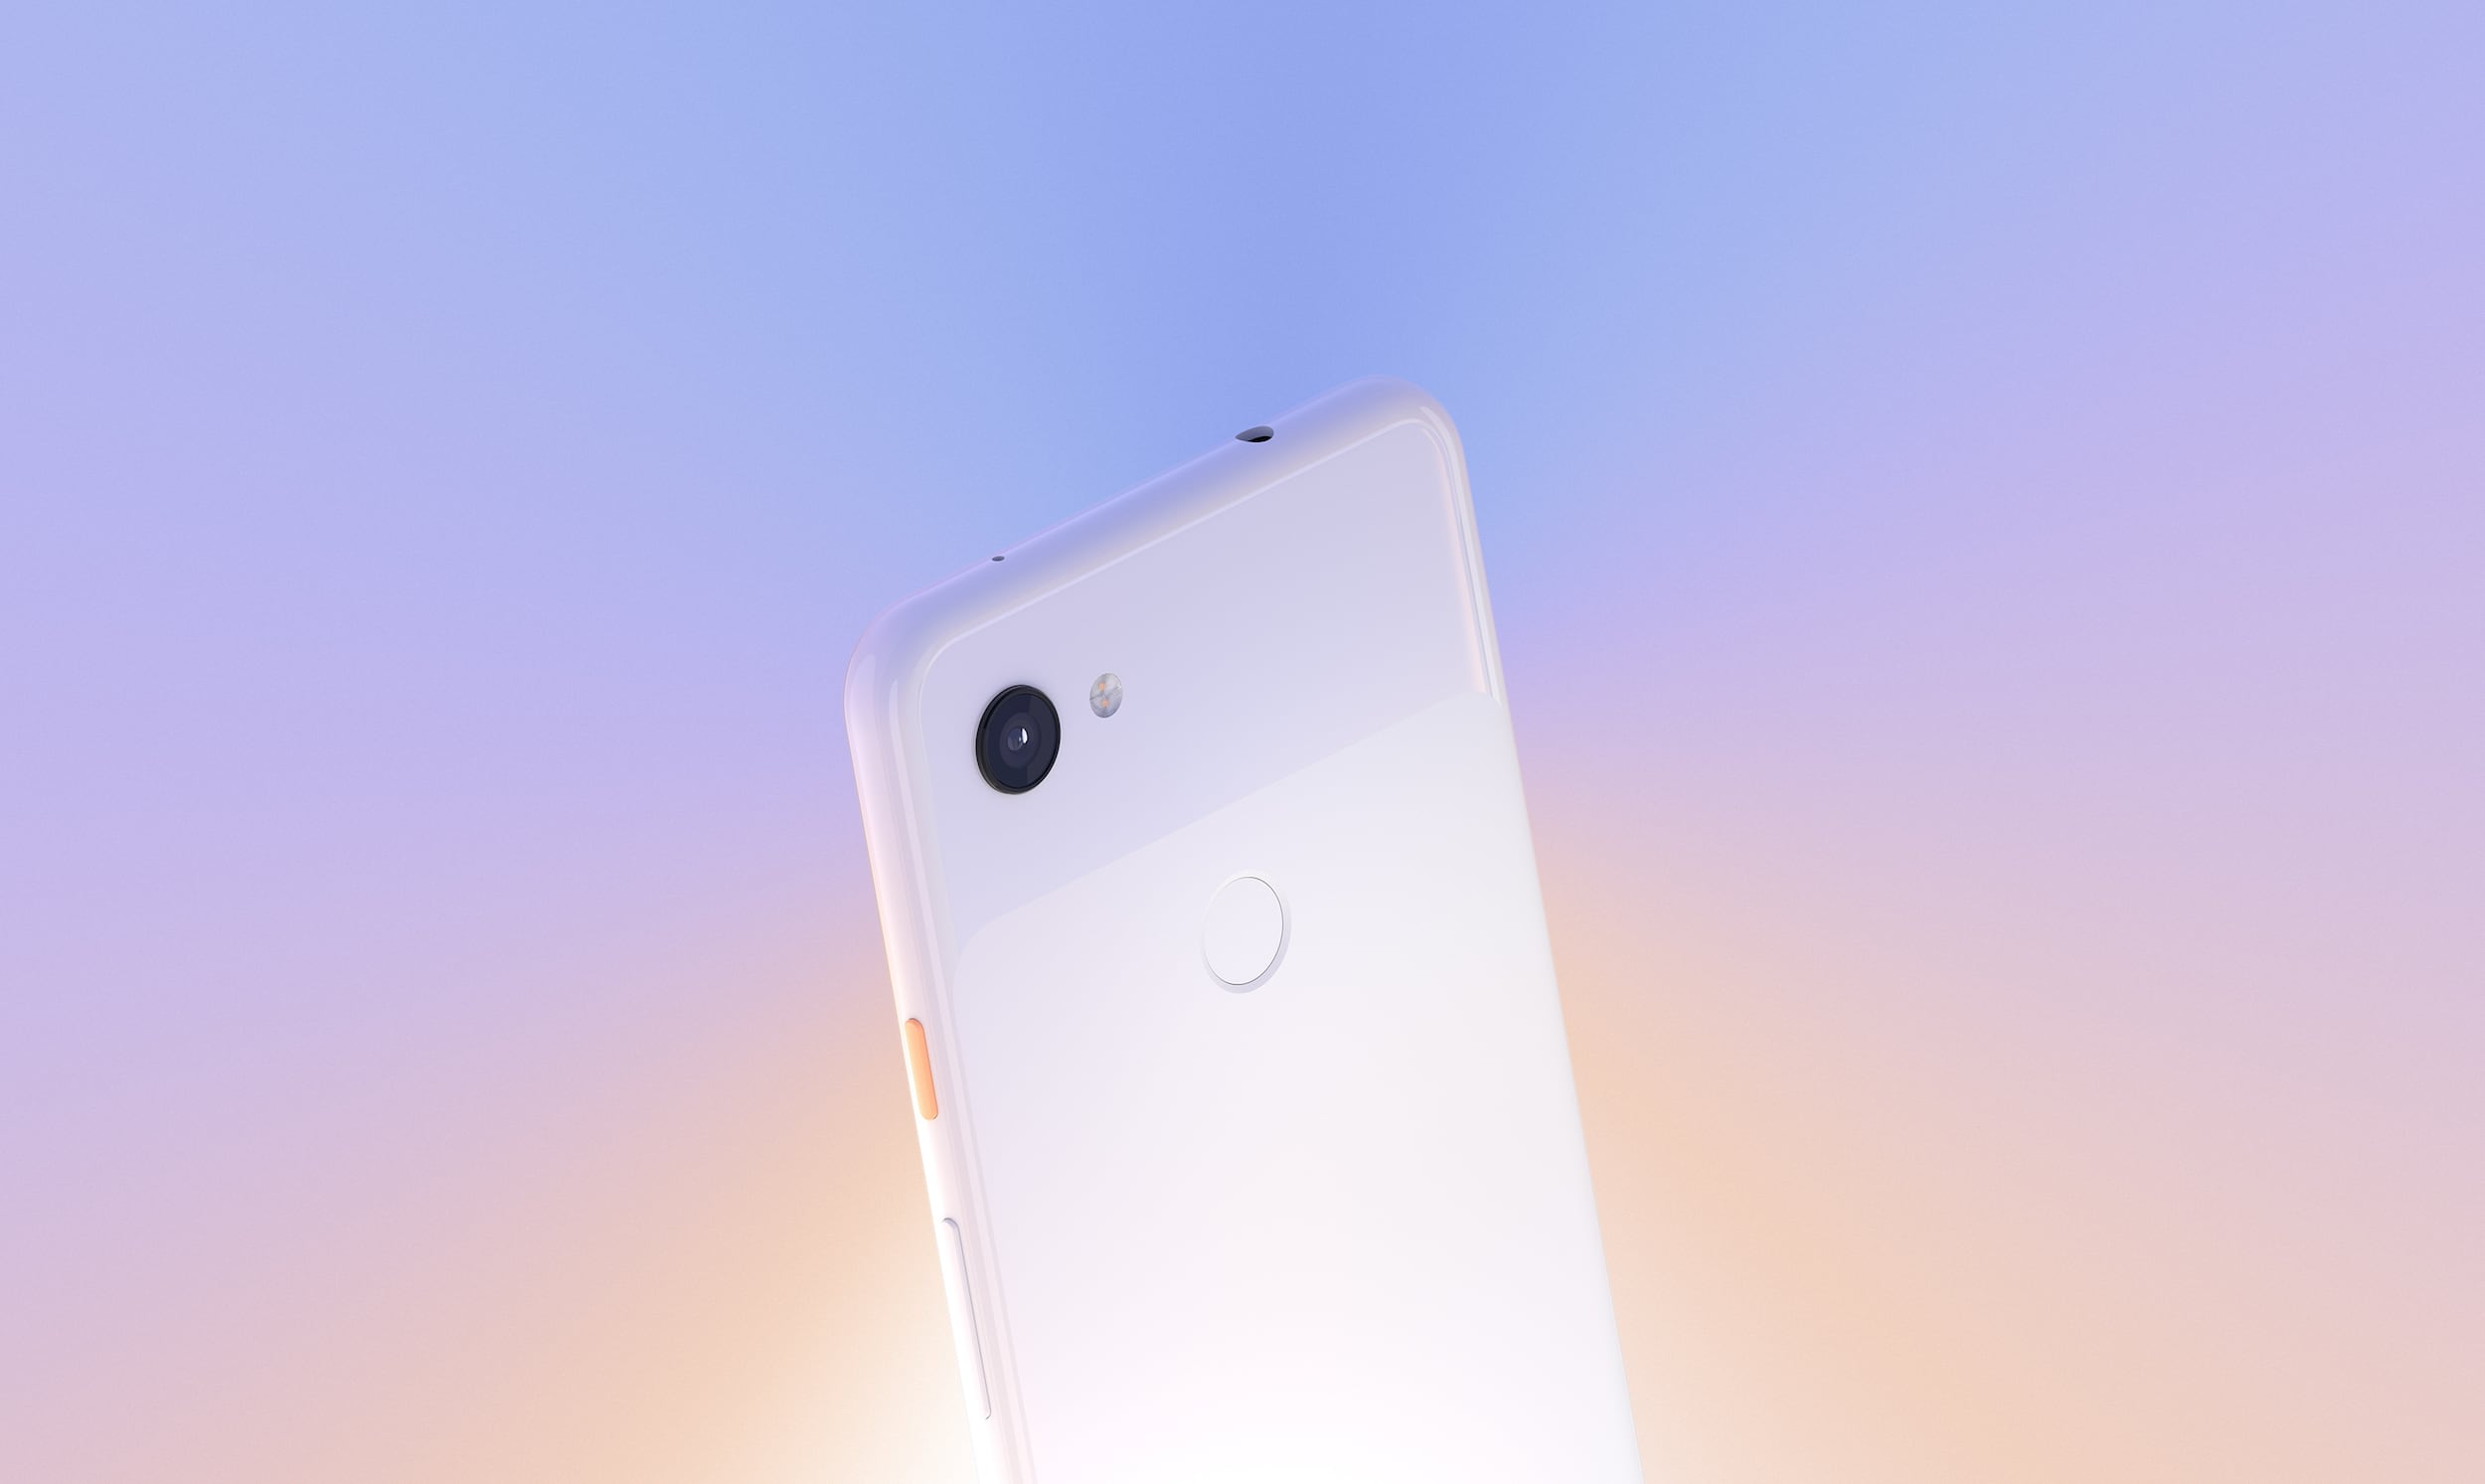 Google Pixel 3a and 3a XL Smartphones can last up to 30 hours